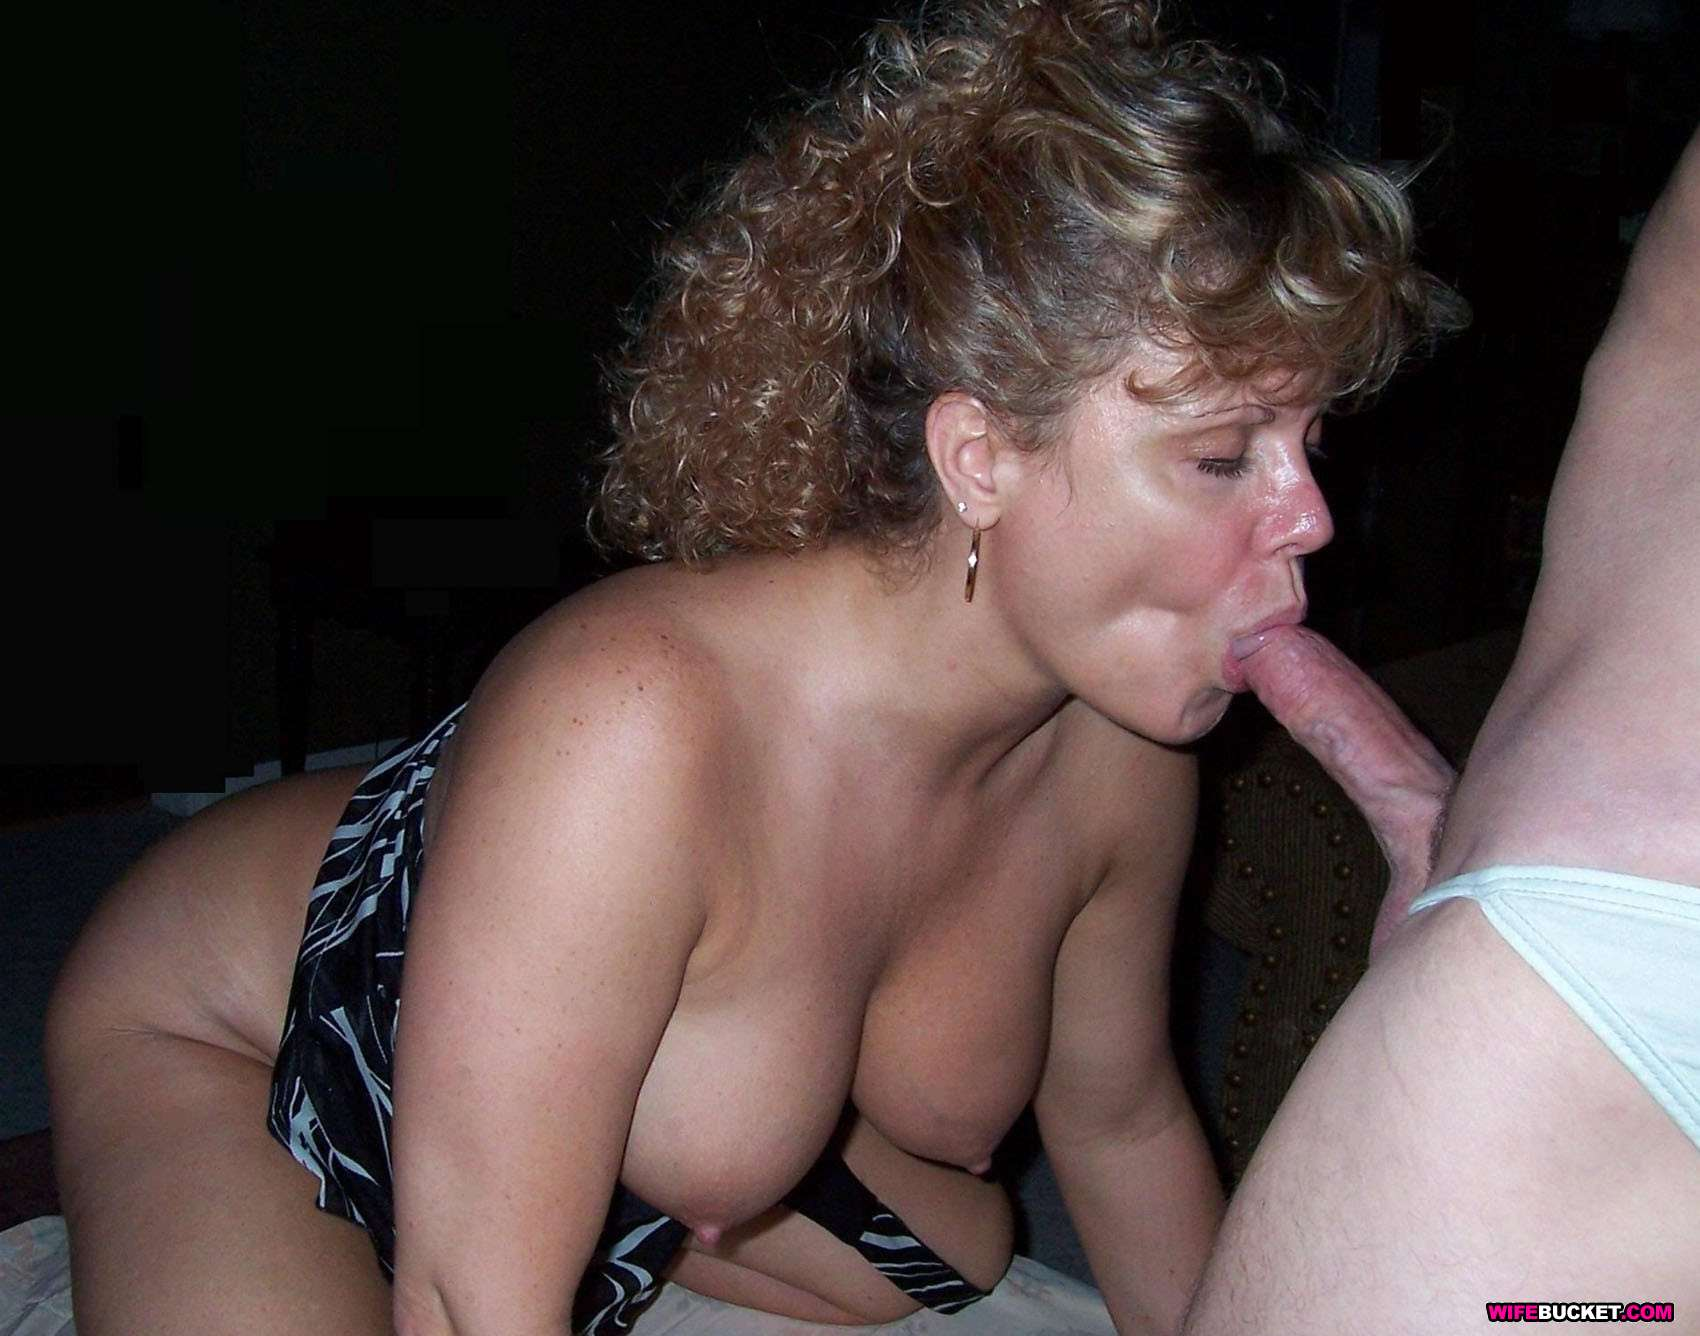 Not present Naked amateur wife blowjob images have hit